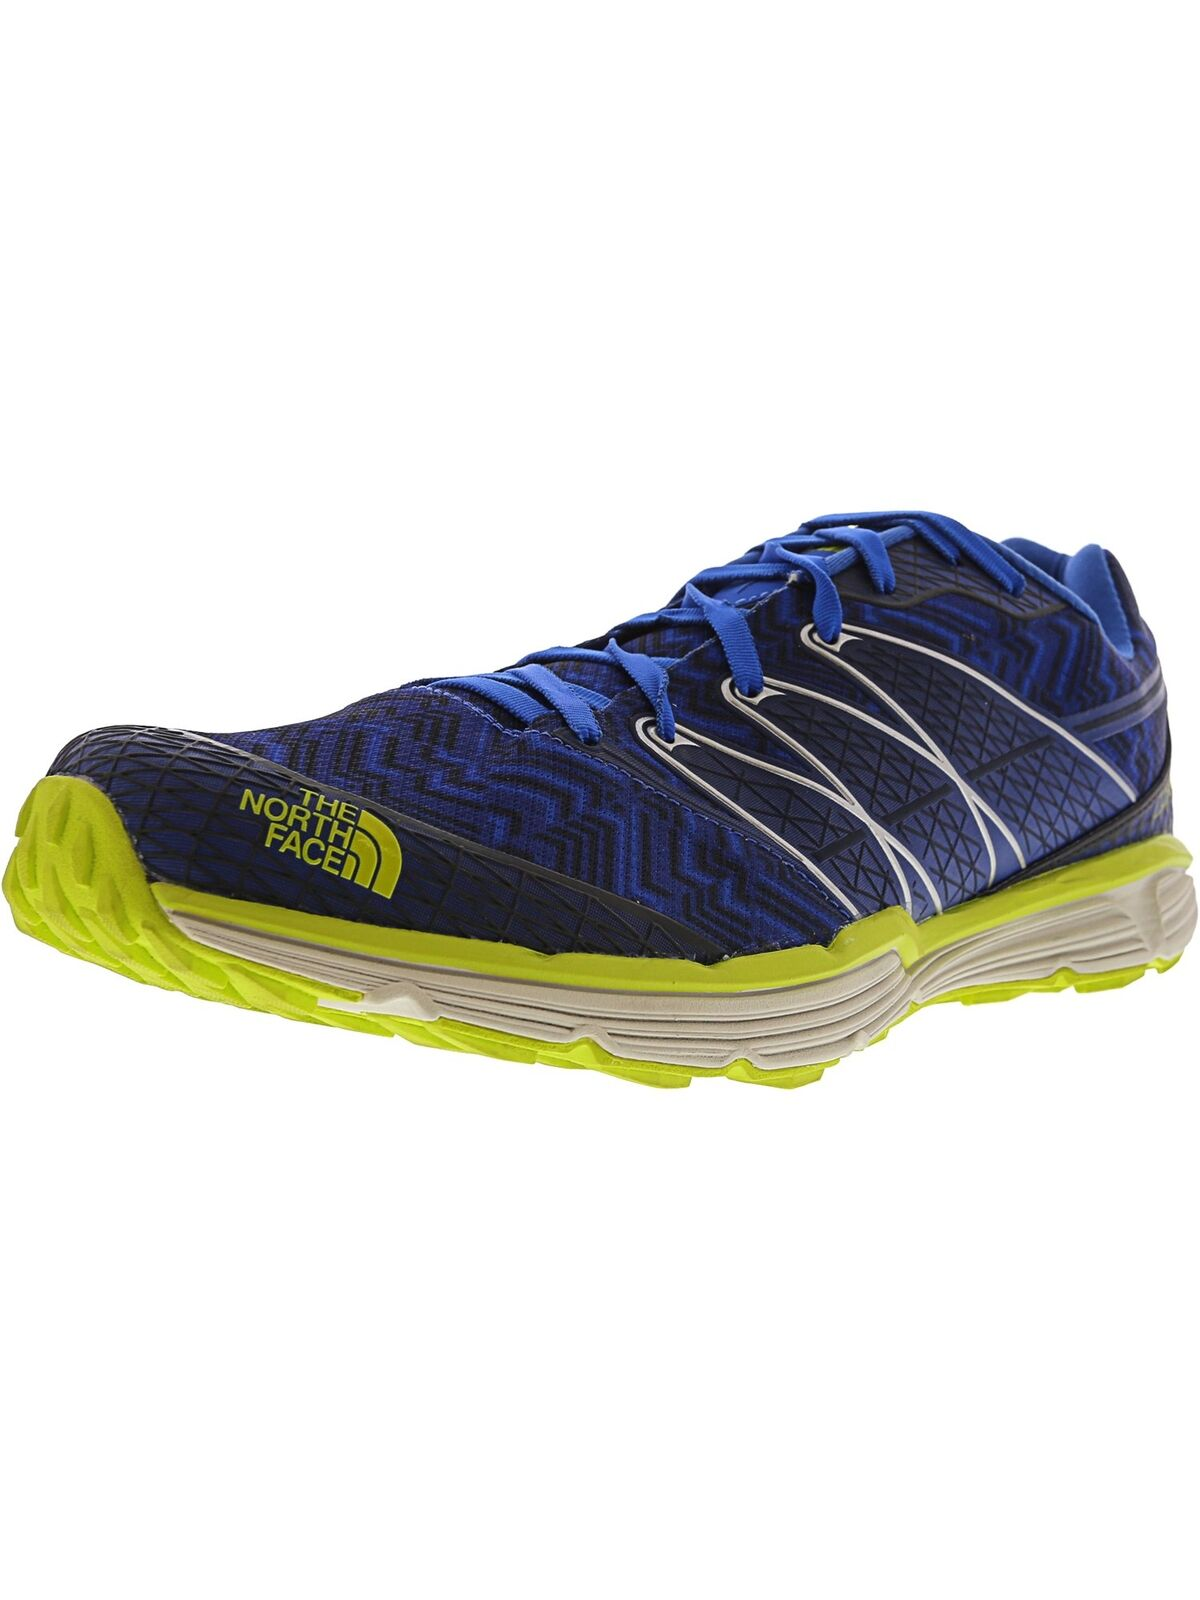 The North Face Men's Litewave Tr Ankle-High Fabric Trail Runner